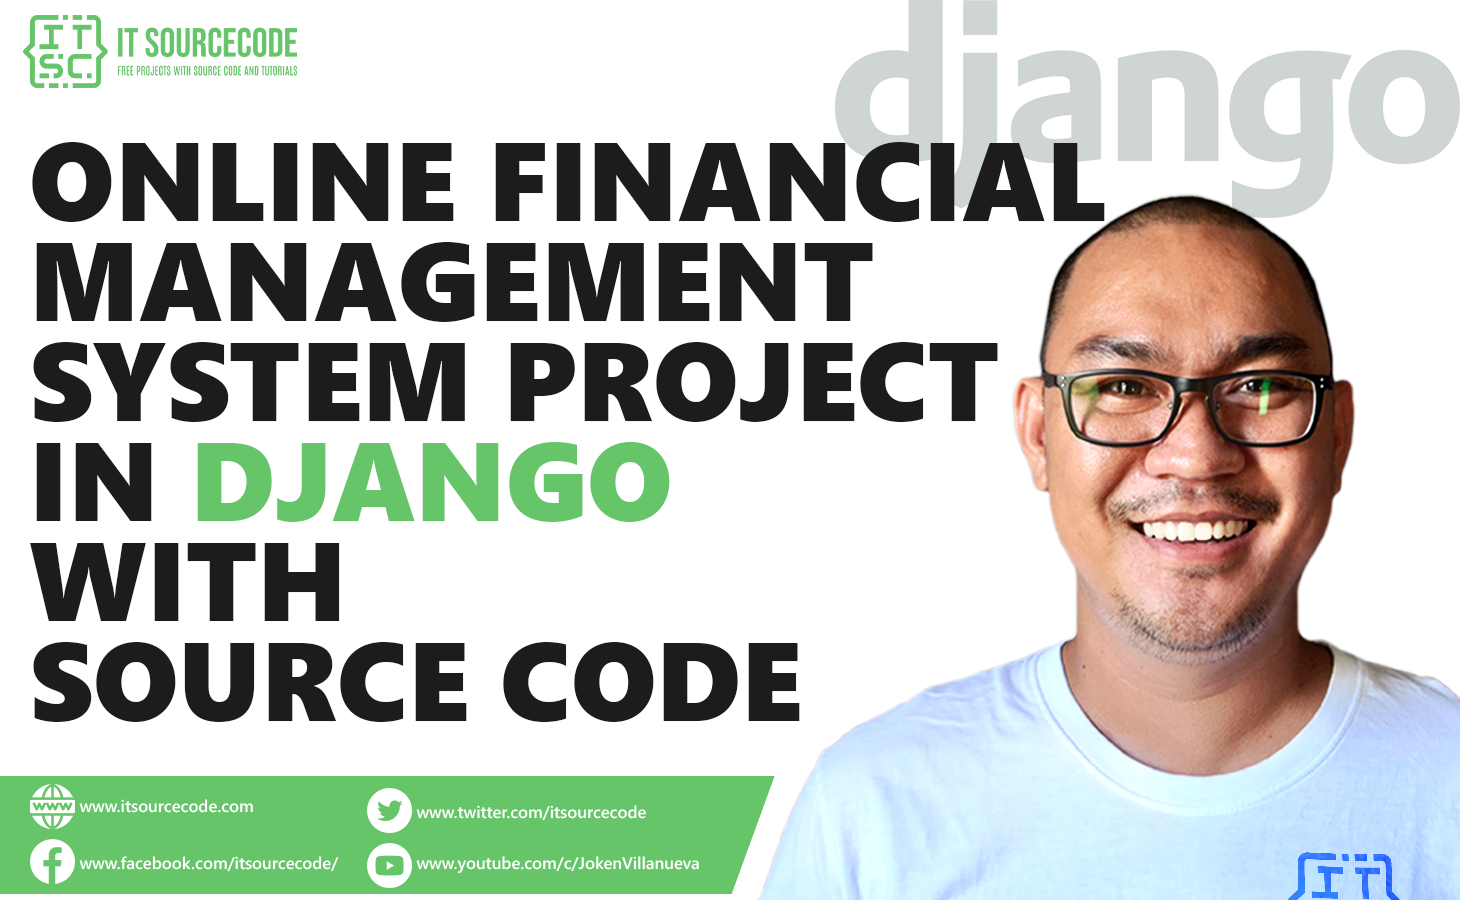 Online Financial Management System Project in Django with Source Code